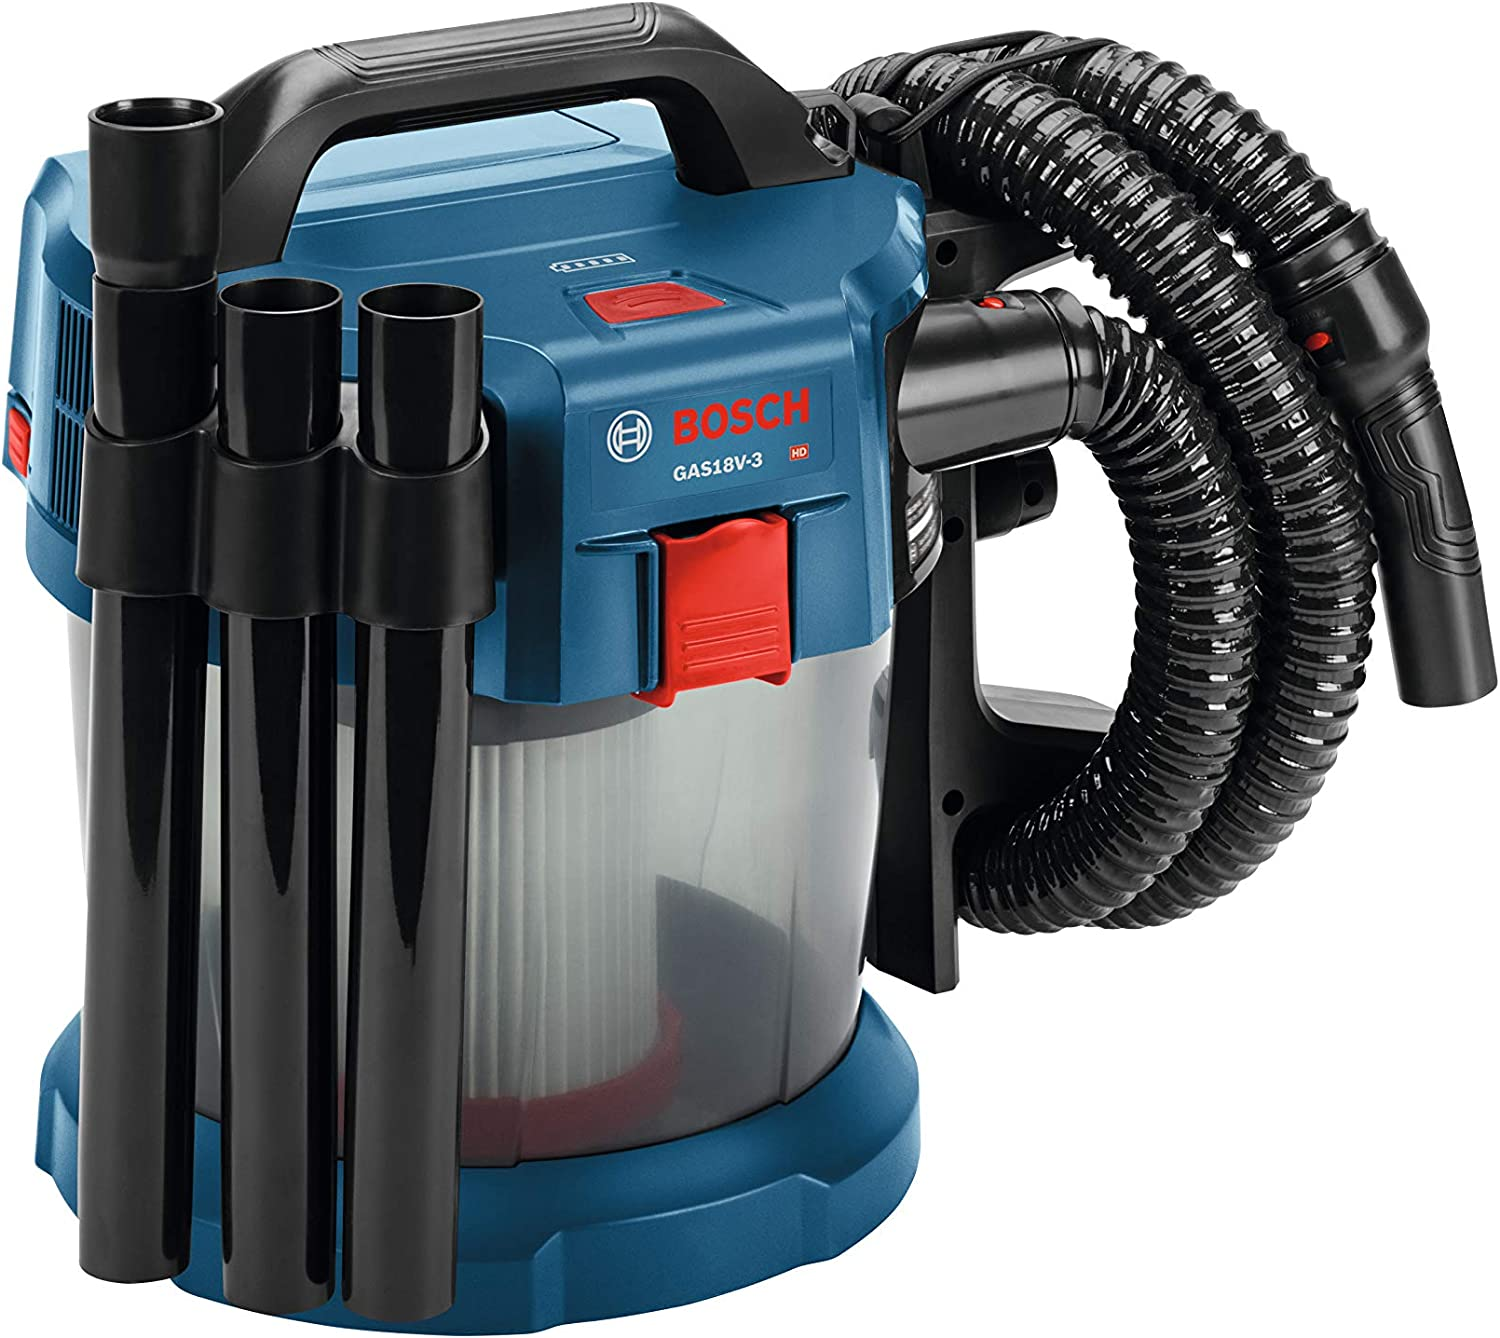 Bosch Gas18v 3n 18v 1 6 Gallon Vacuum Bare Tool Amazon Com